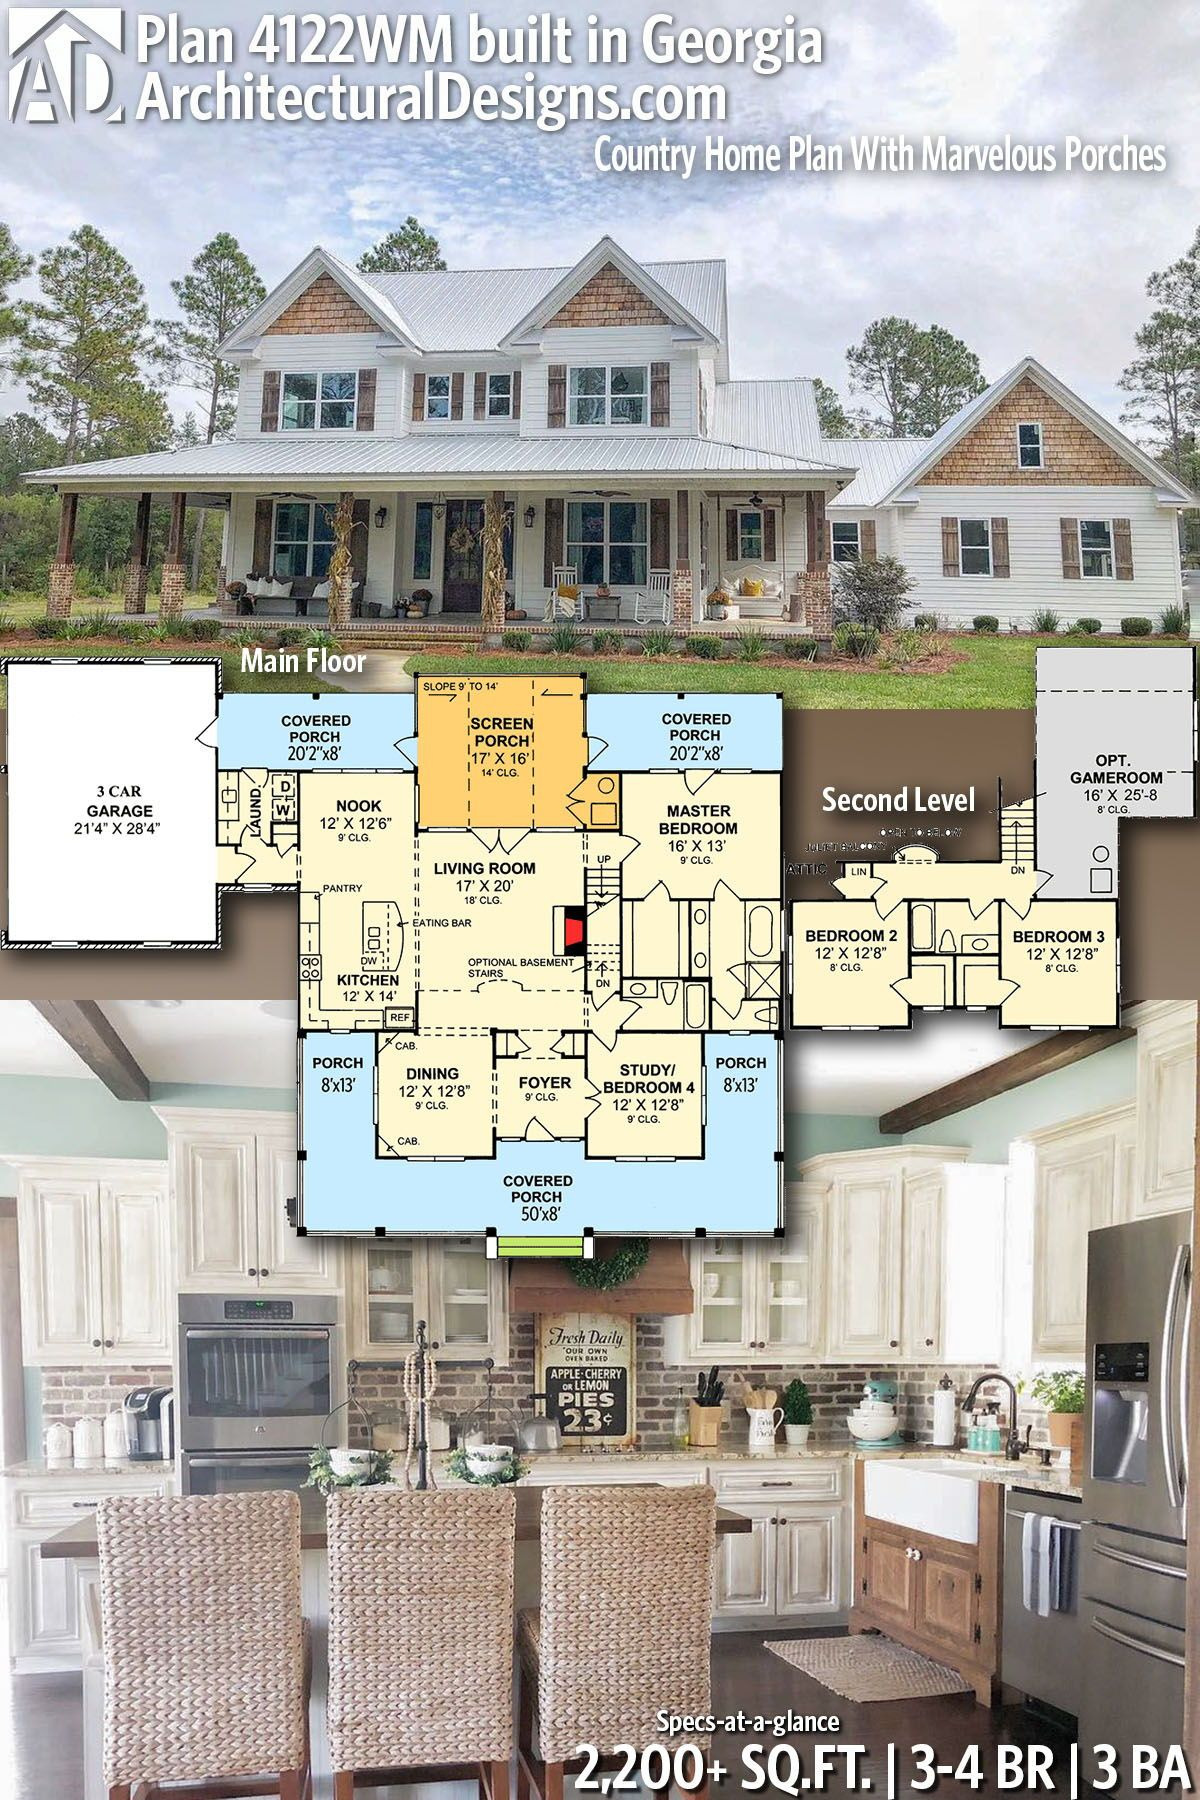 Country Homes House Plans Best Of Plan 4122wm Country Home Plan with Marvelous Porches In